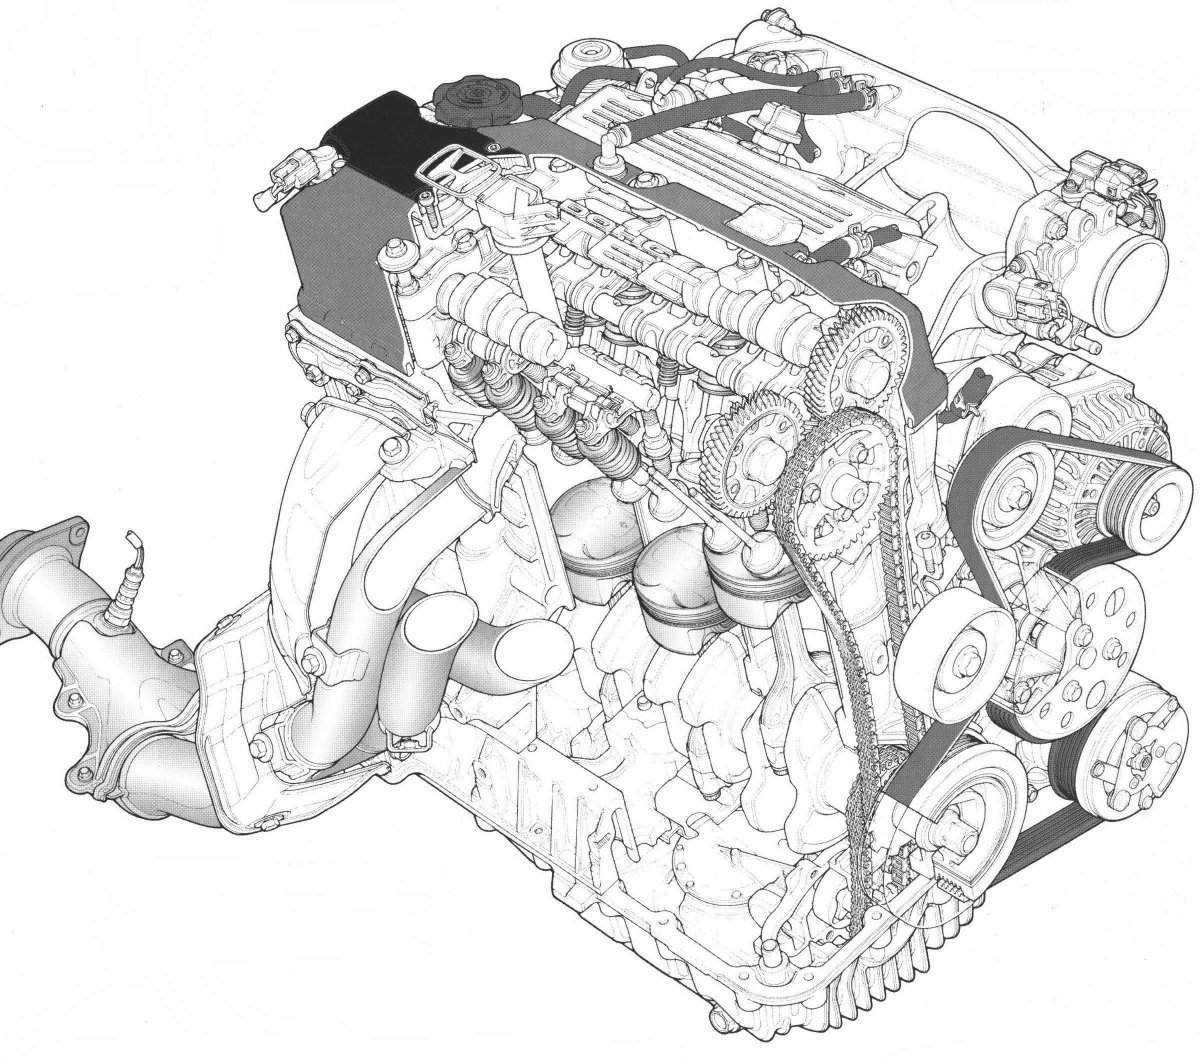 Bill Sherwood's VVT Vs Vtec, page 2